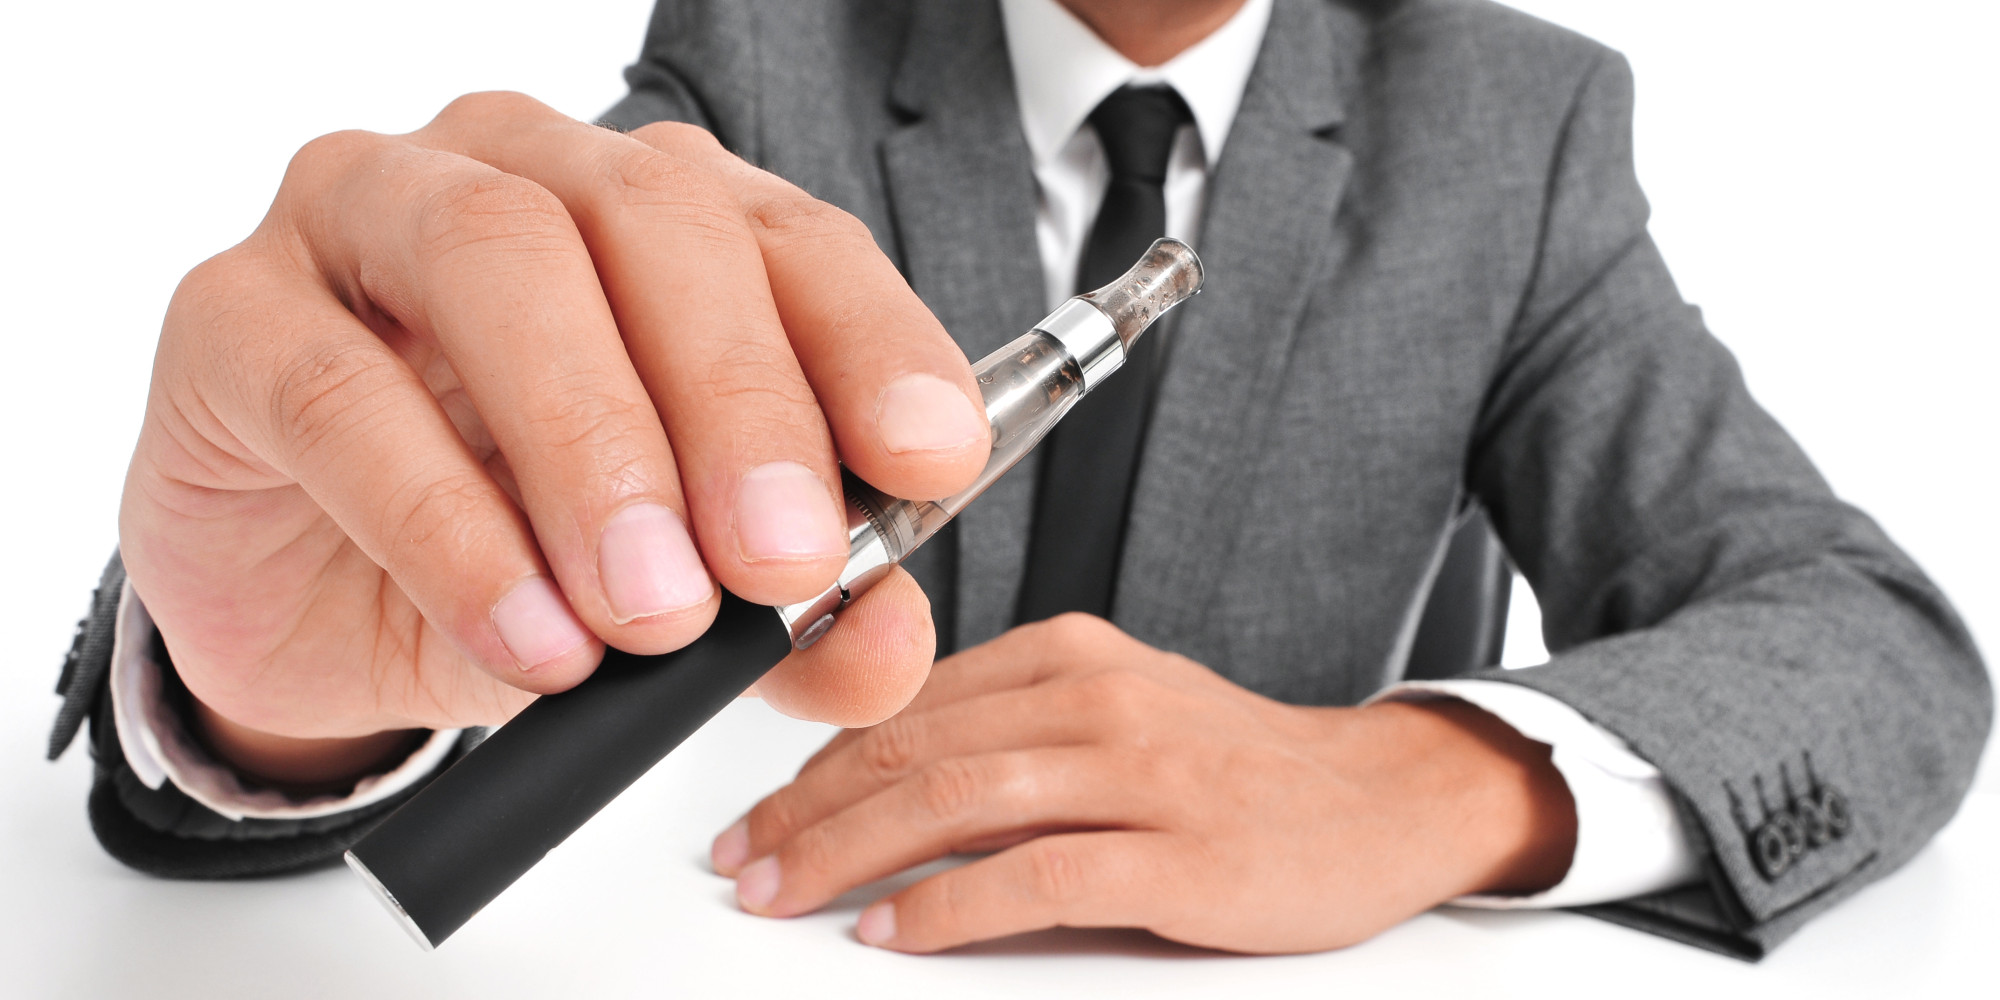 The Truth About The Safety Of E-Cigarettes